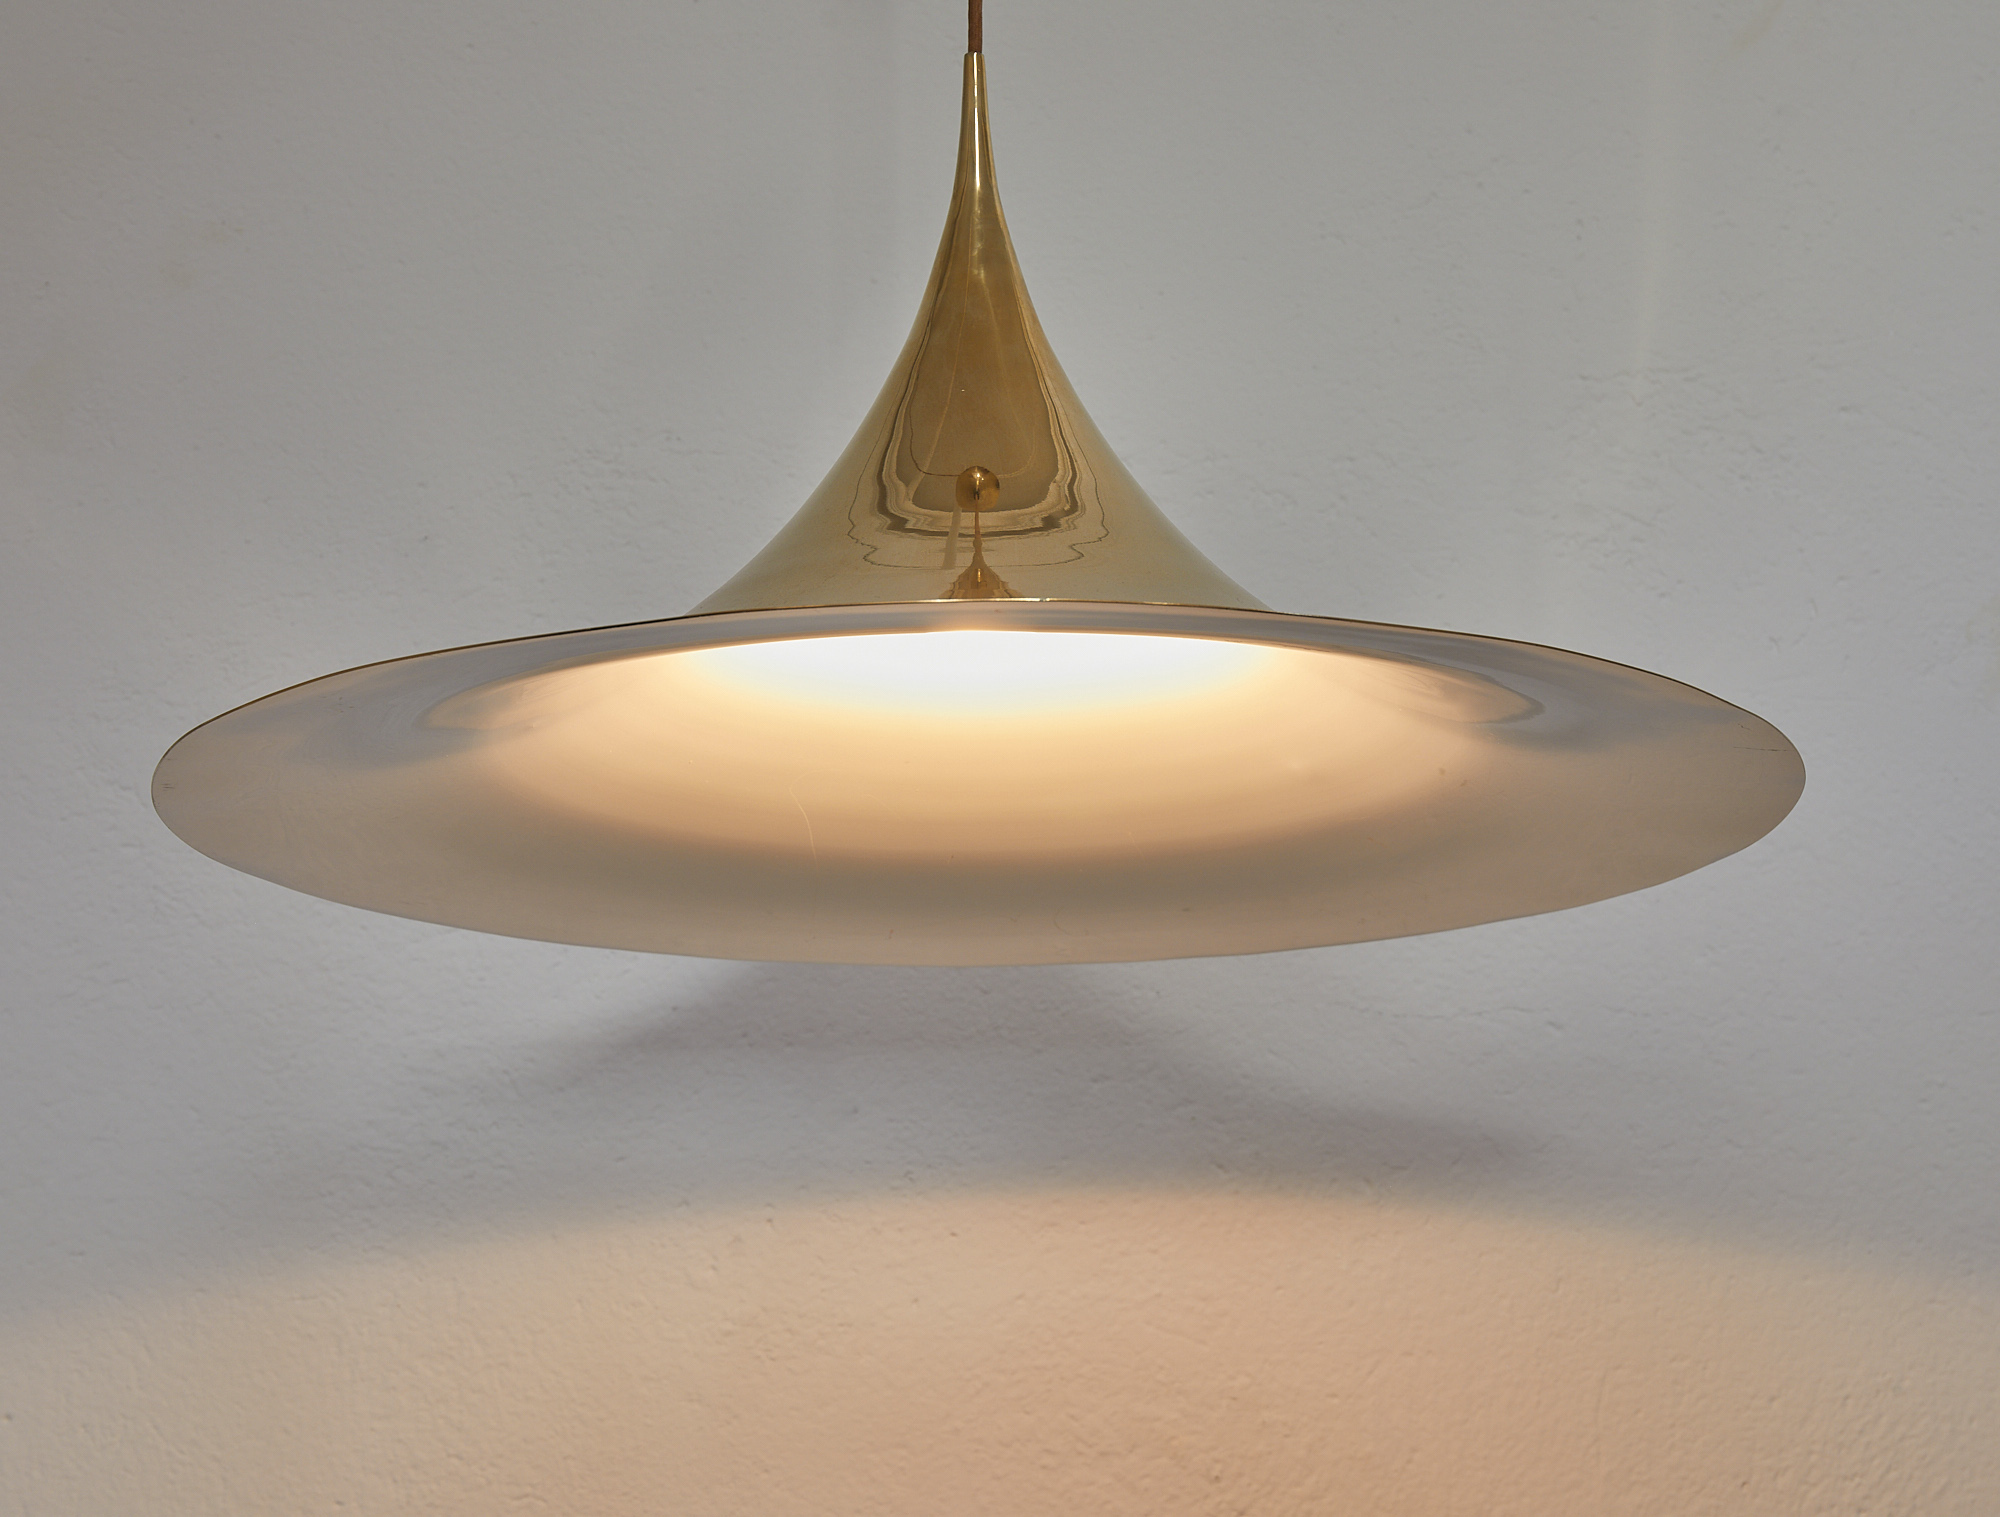 gold-plated-semi-lamp-by-claus-bonderup-and-thorsten-thorup-fogmorup-1967-image-04